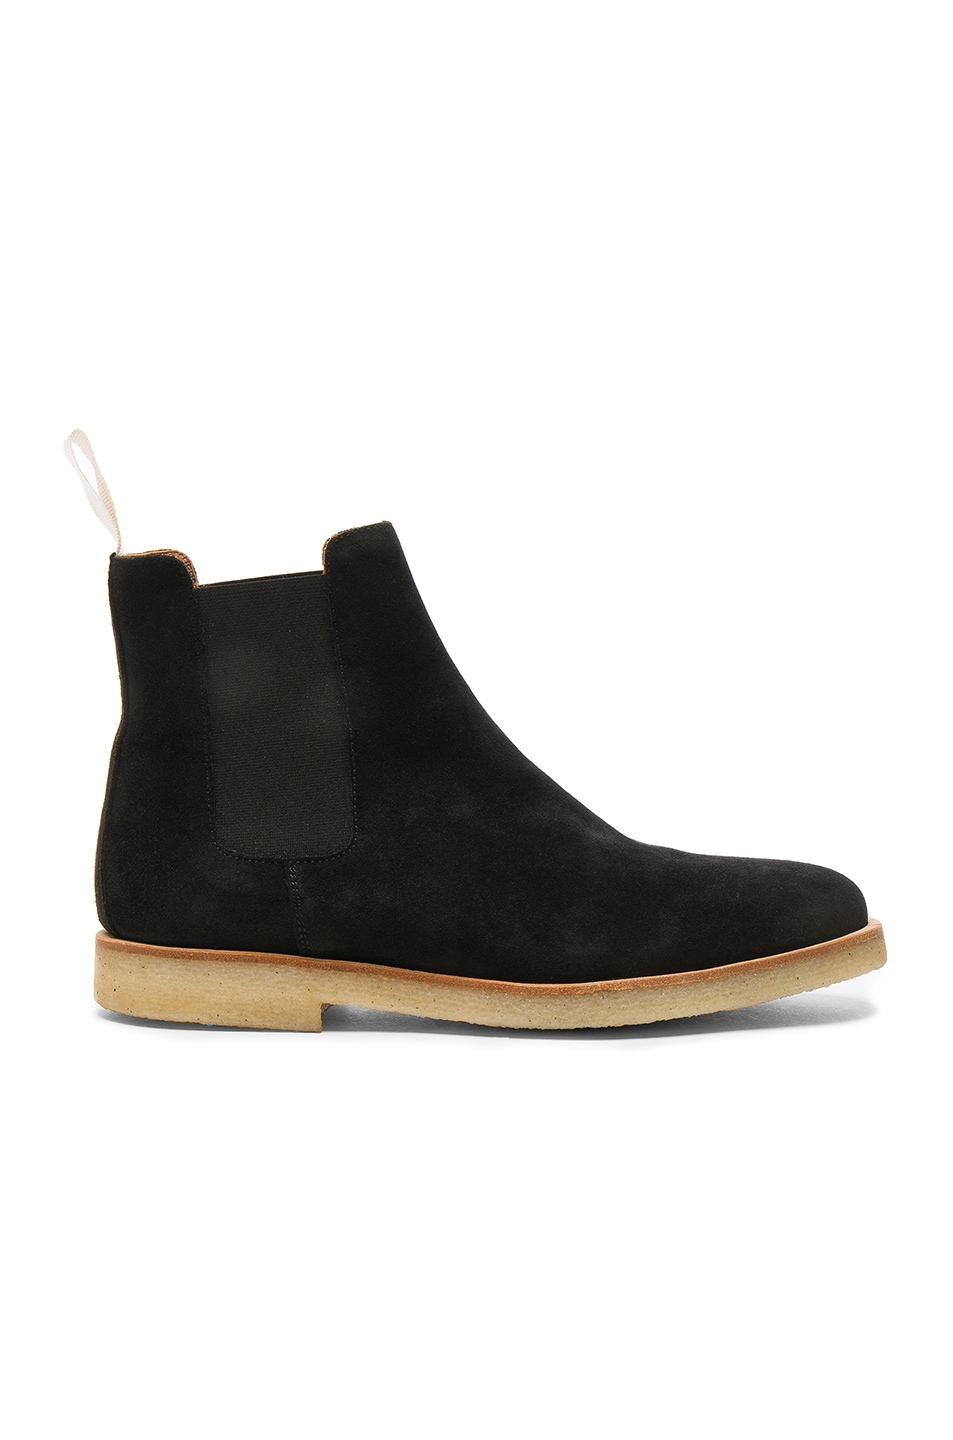 Image 1 of Common Projects Suede Chelsea Boots in Black